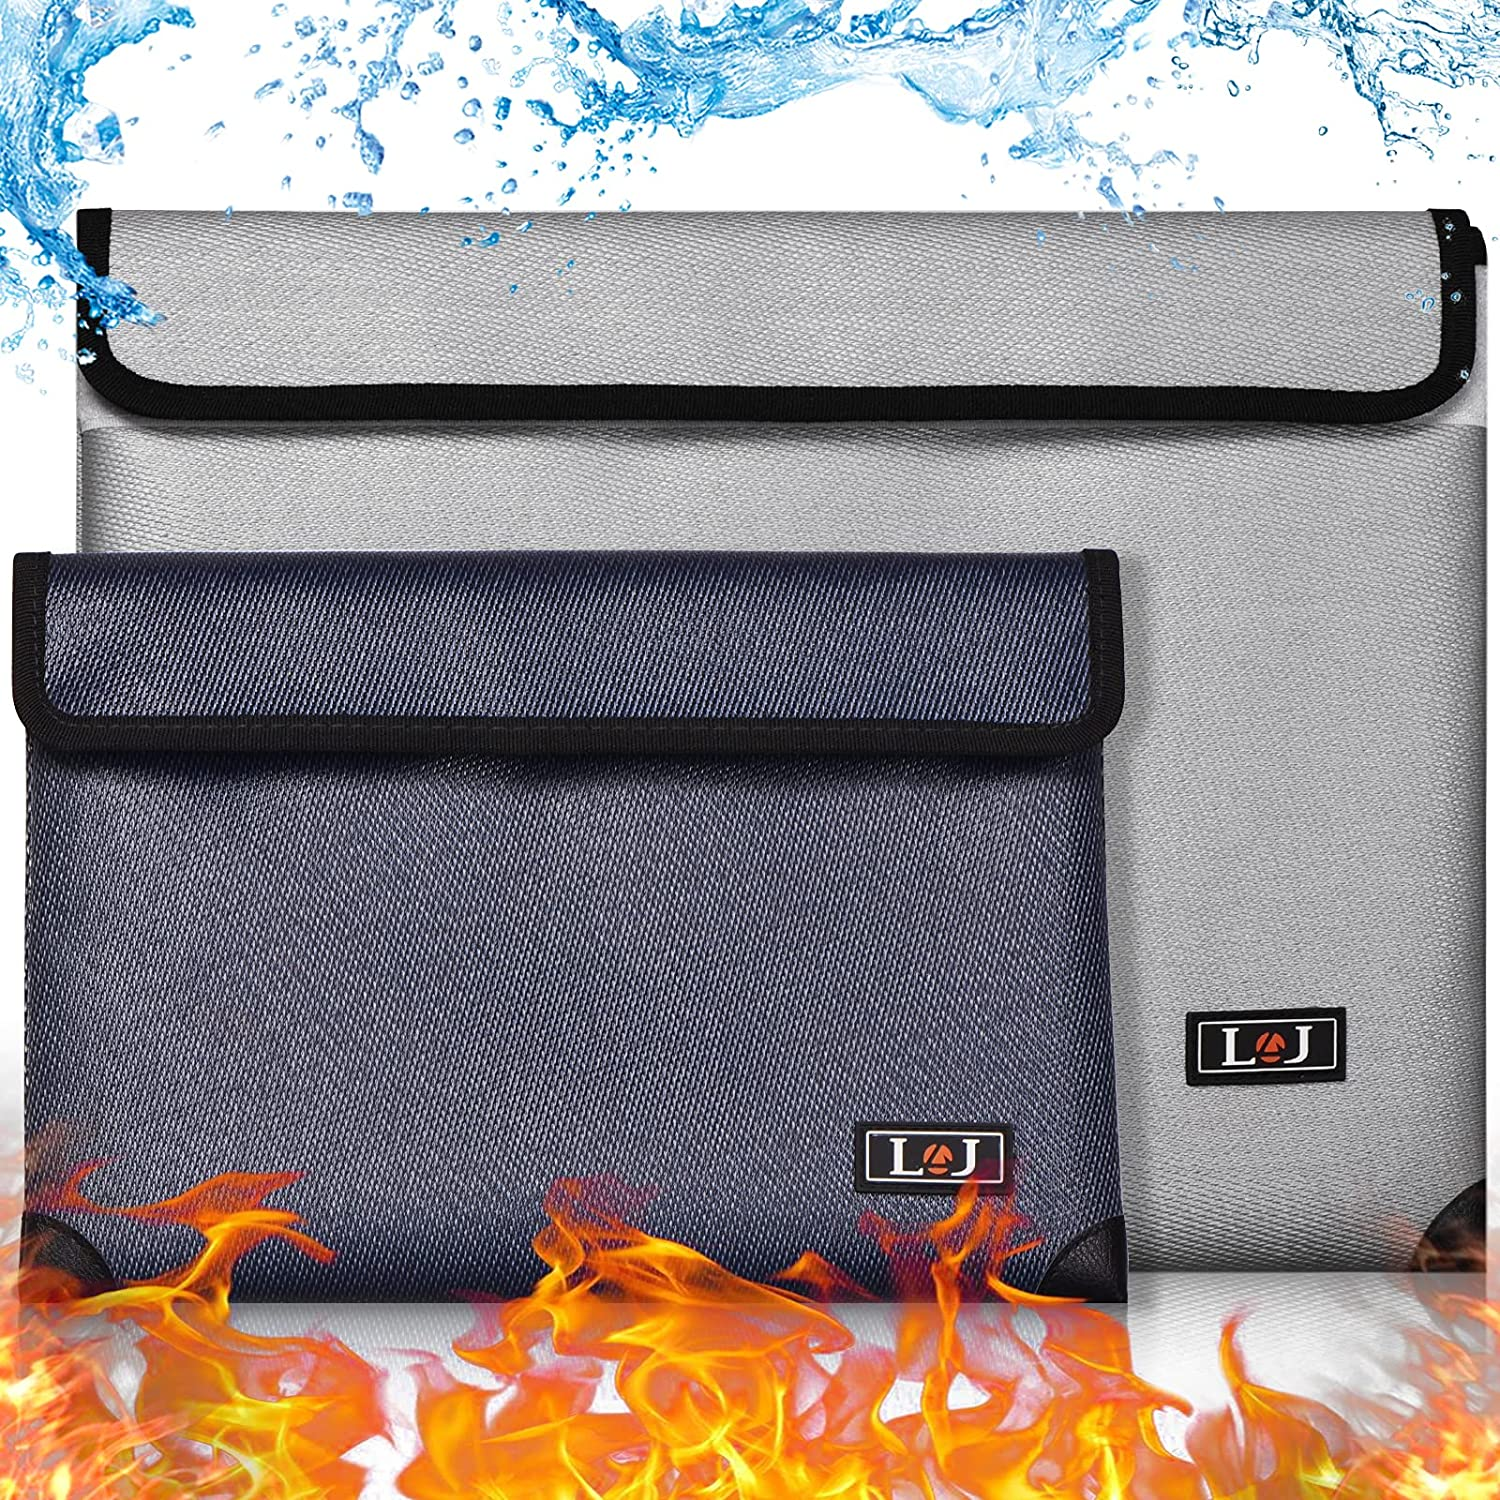 """BNT Fireproof Document Bag 2 13.8""""x10.6""""Fireproo low-pricing Pack 70% OFF Outlet"""